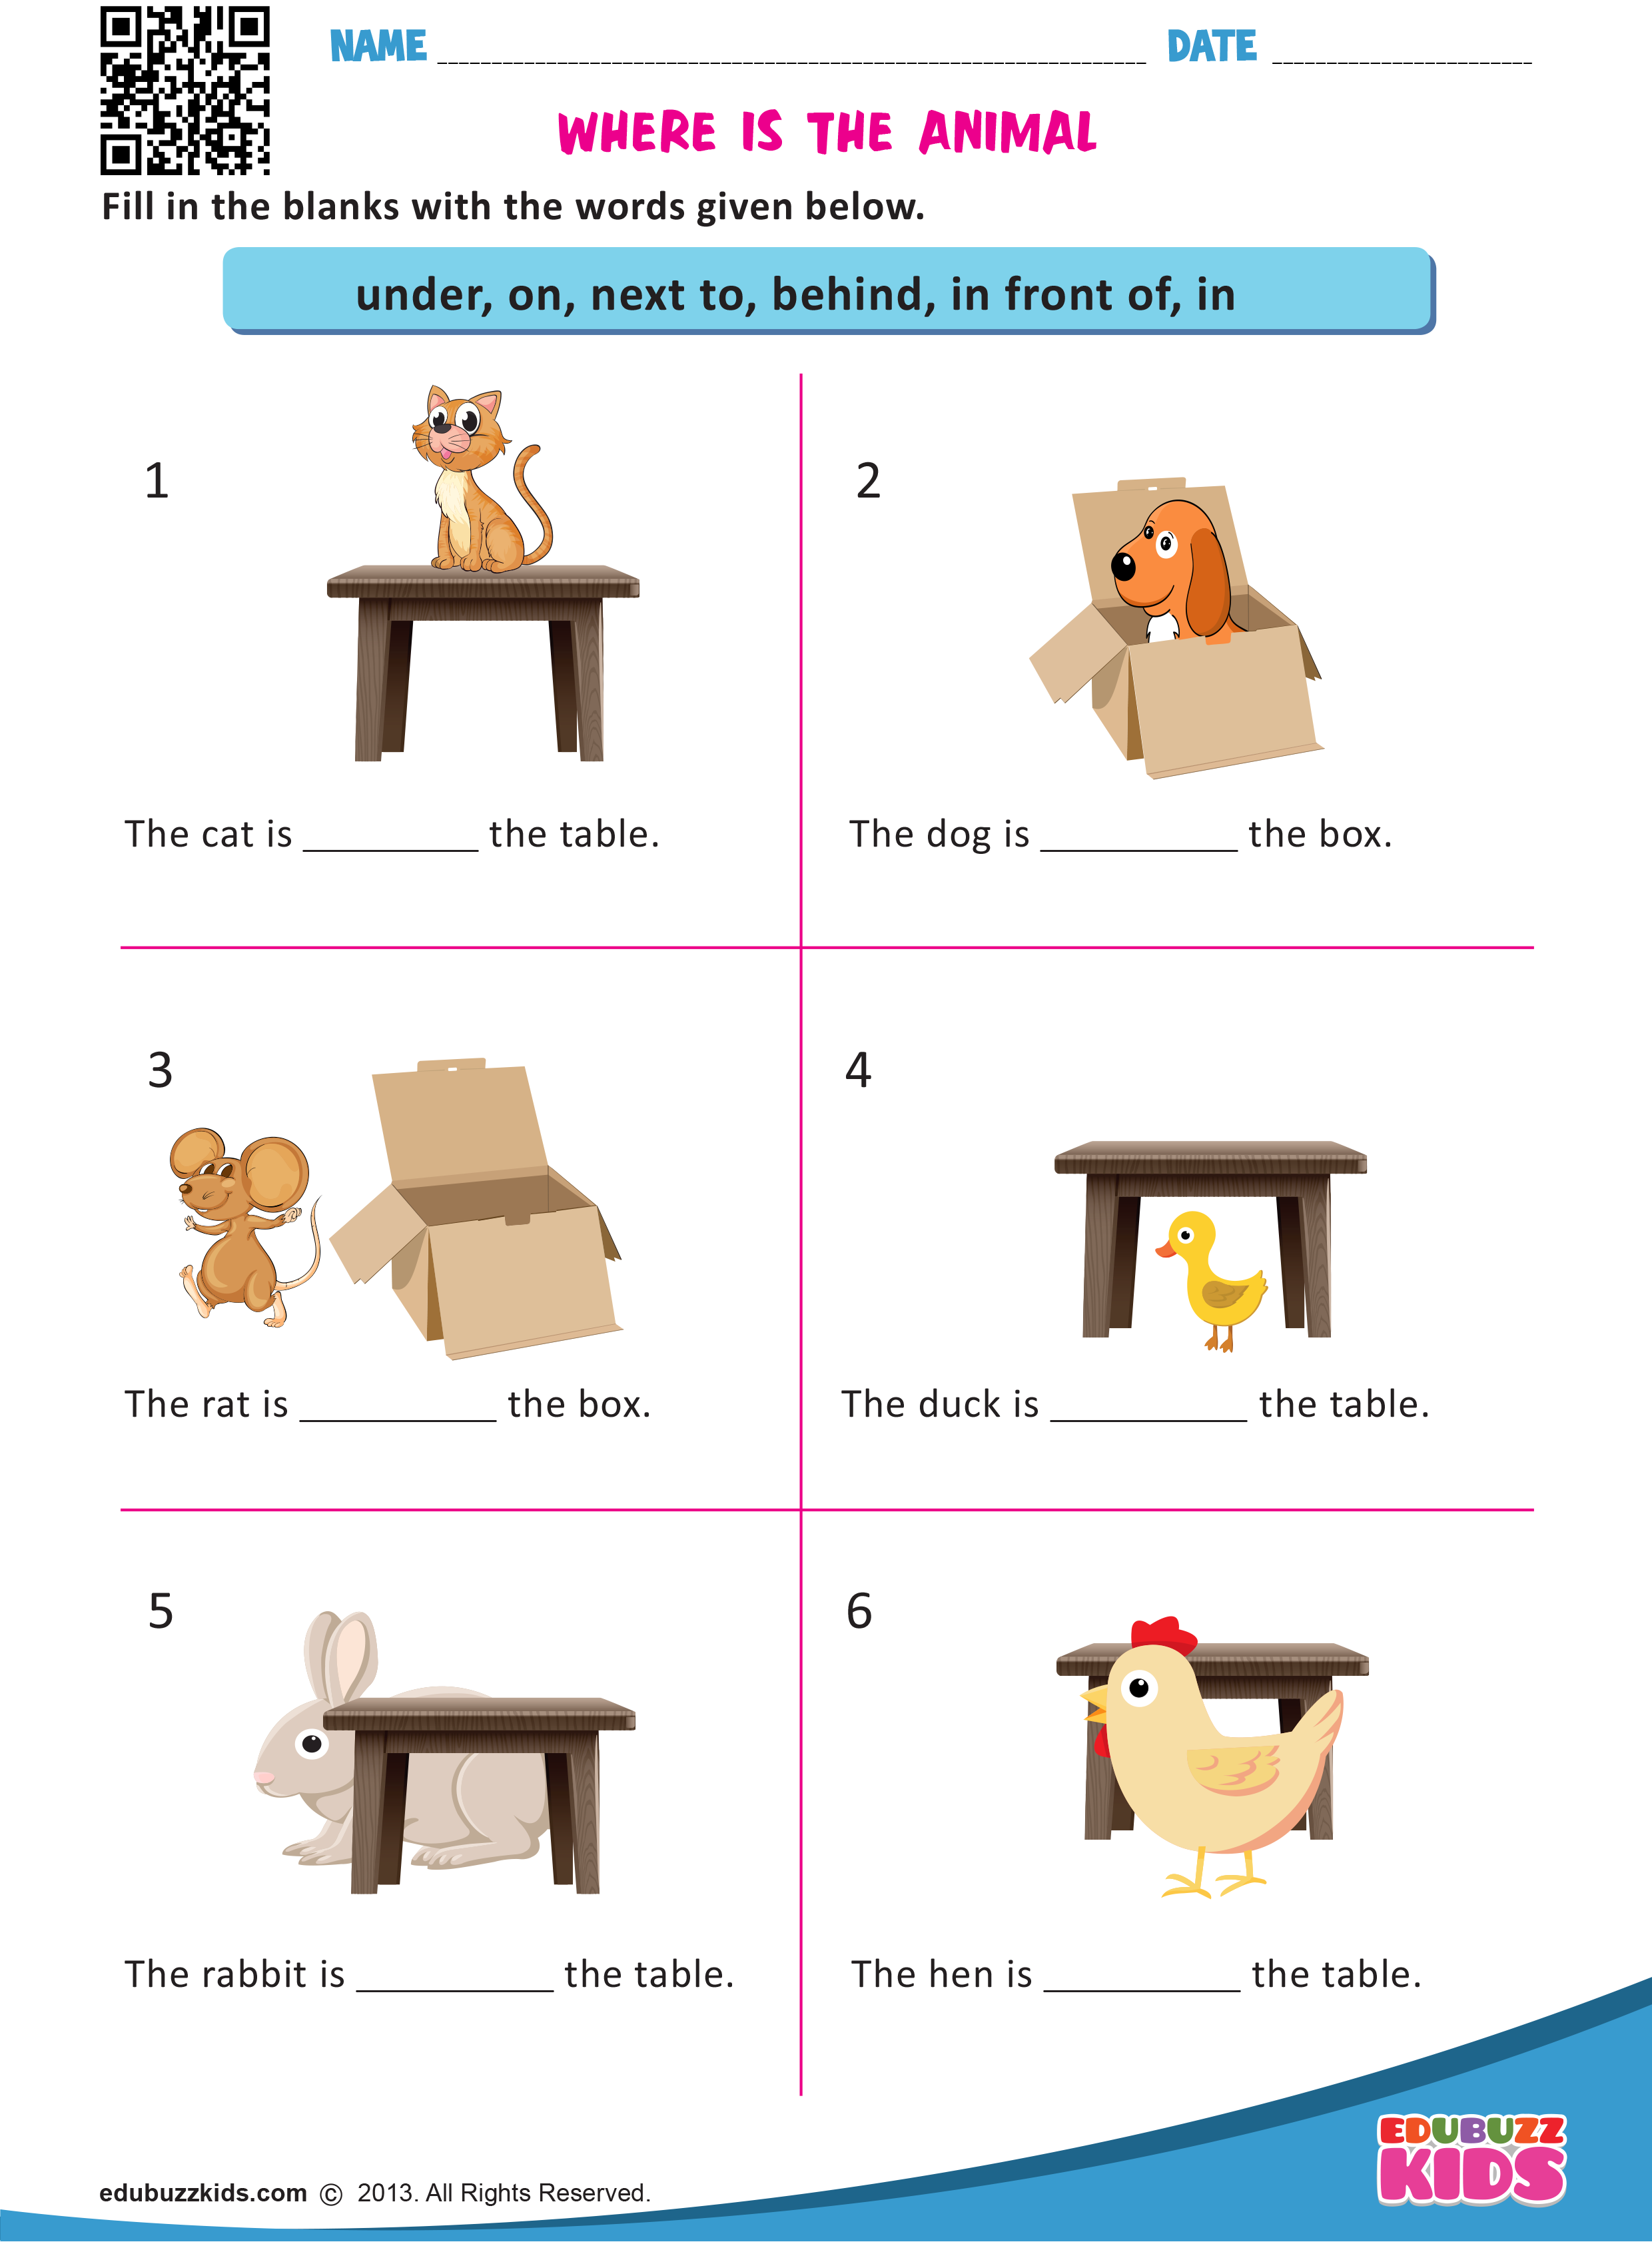 Where Is The Animal Preposition Worksheets Preposition Worksheets Kindergarten English Activities For Kids [ 3366 x 2480 Pixel ]